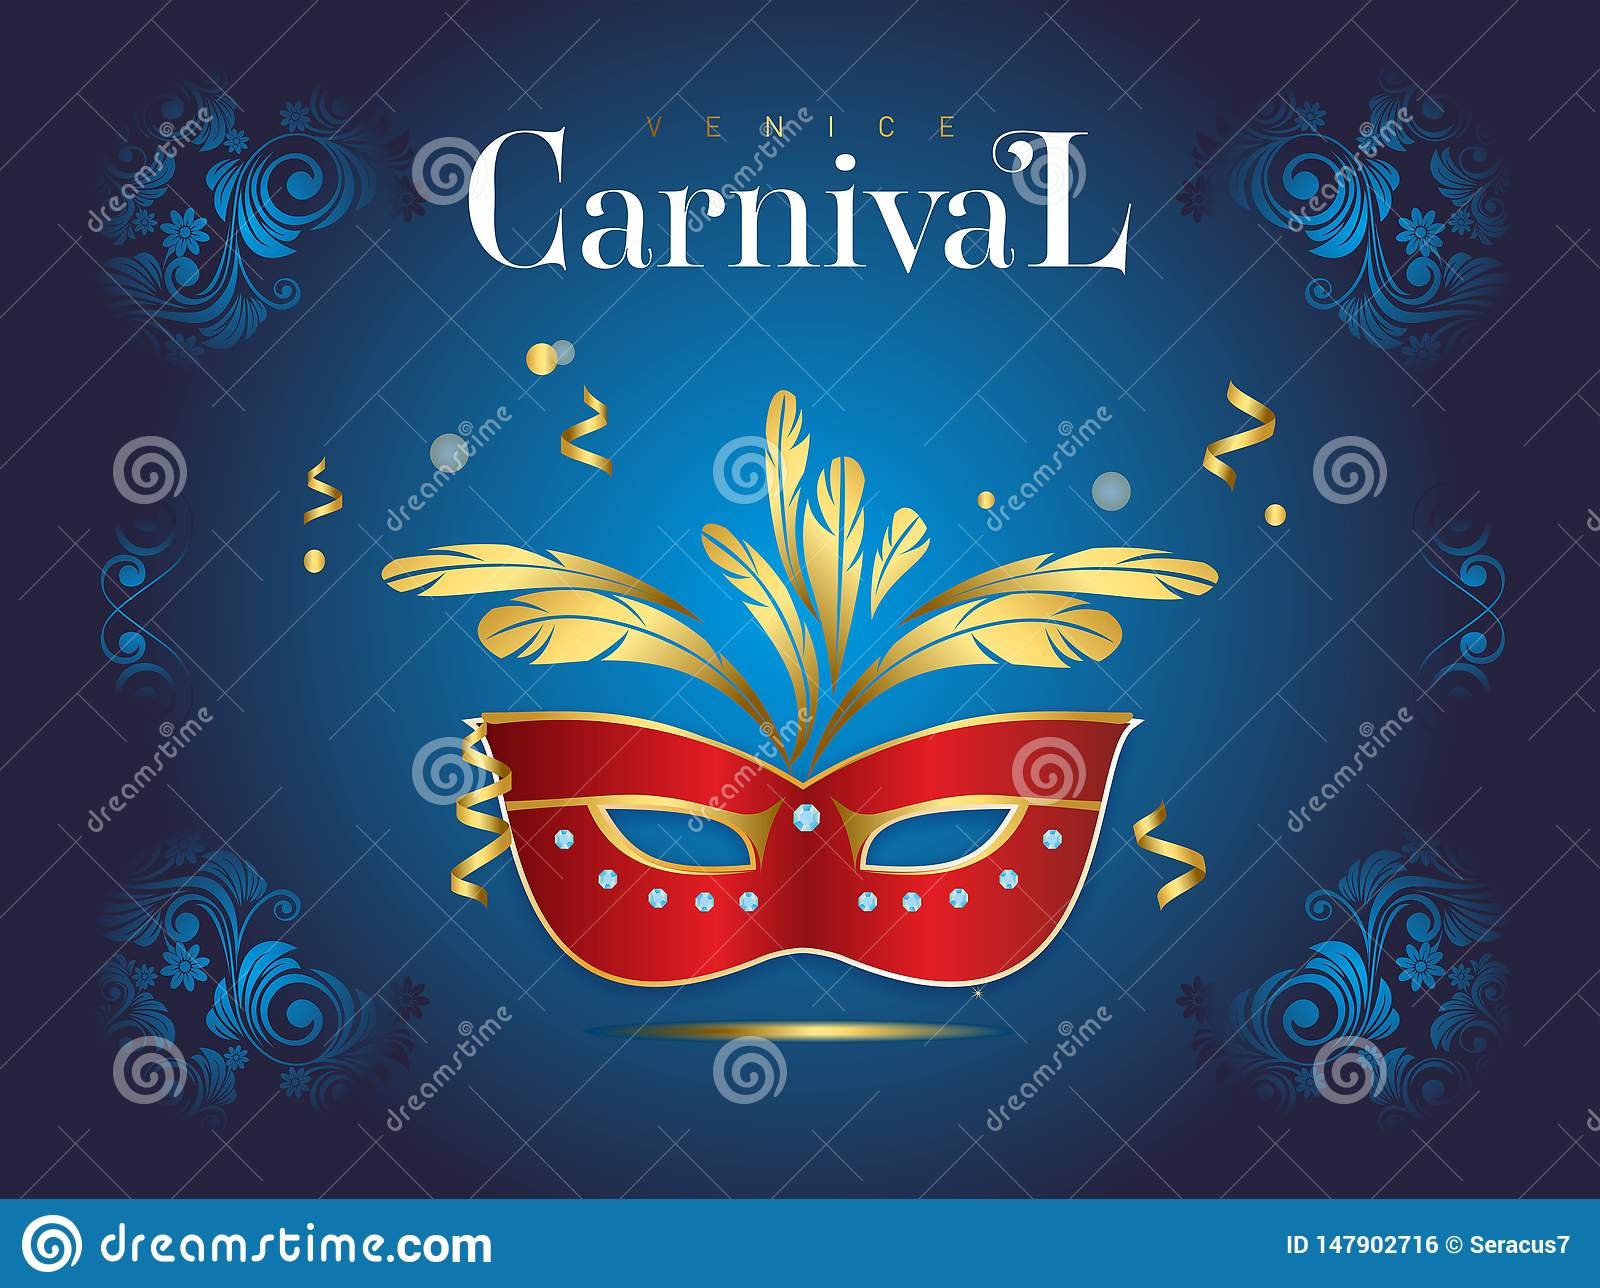 Venetian carnival banner with a luxurious mask and streamers in vector illustration